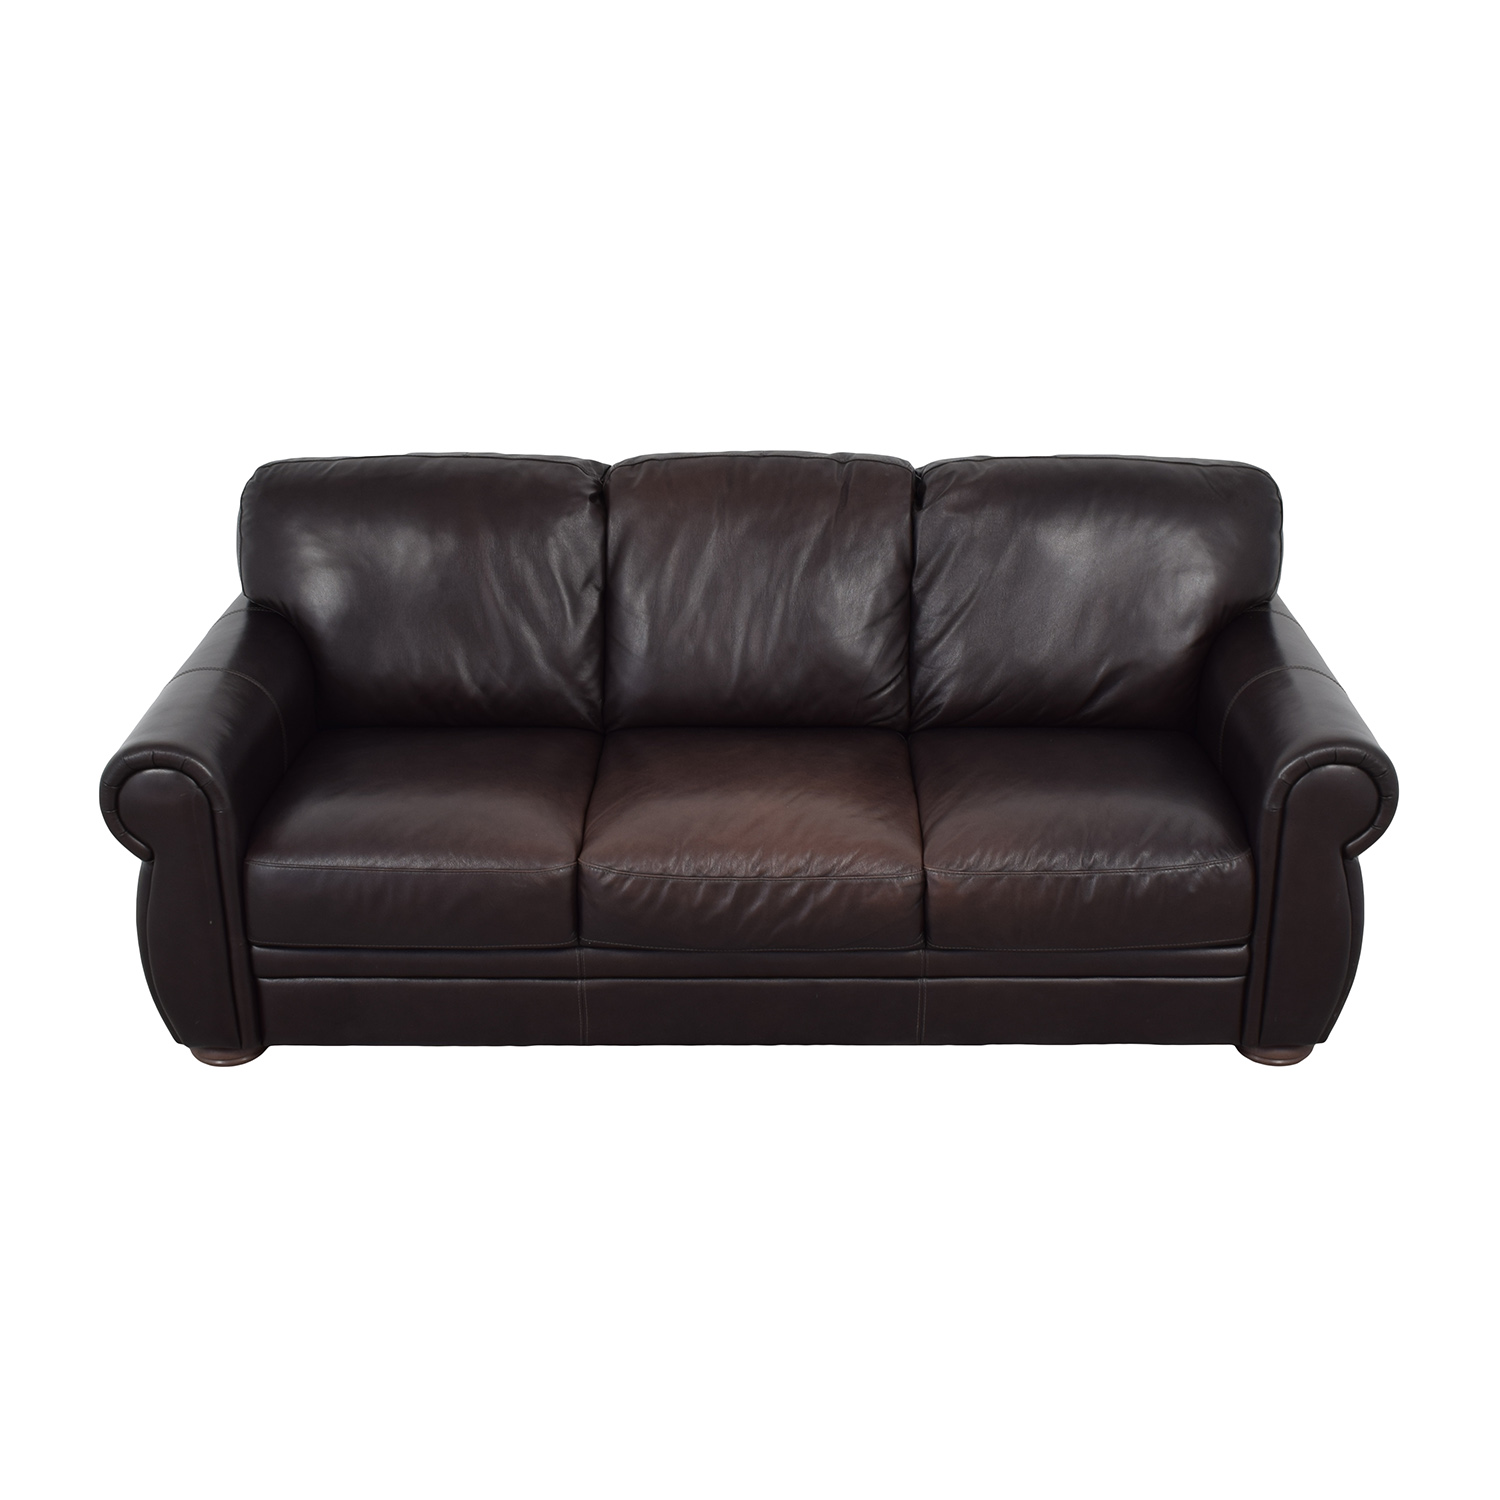 buy Raymour & Flanigan Marsala Leather Sofa Raymour & Flanigan